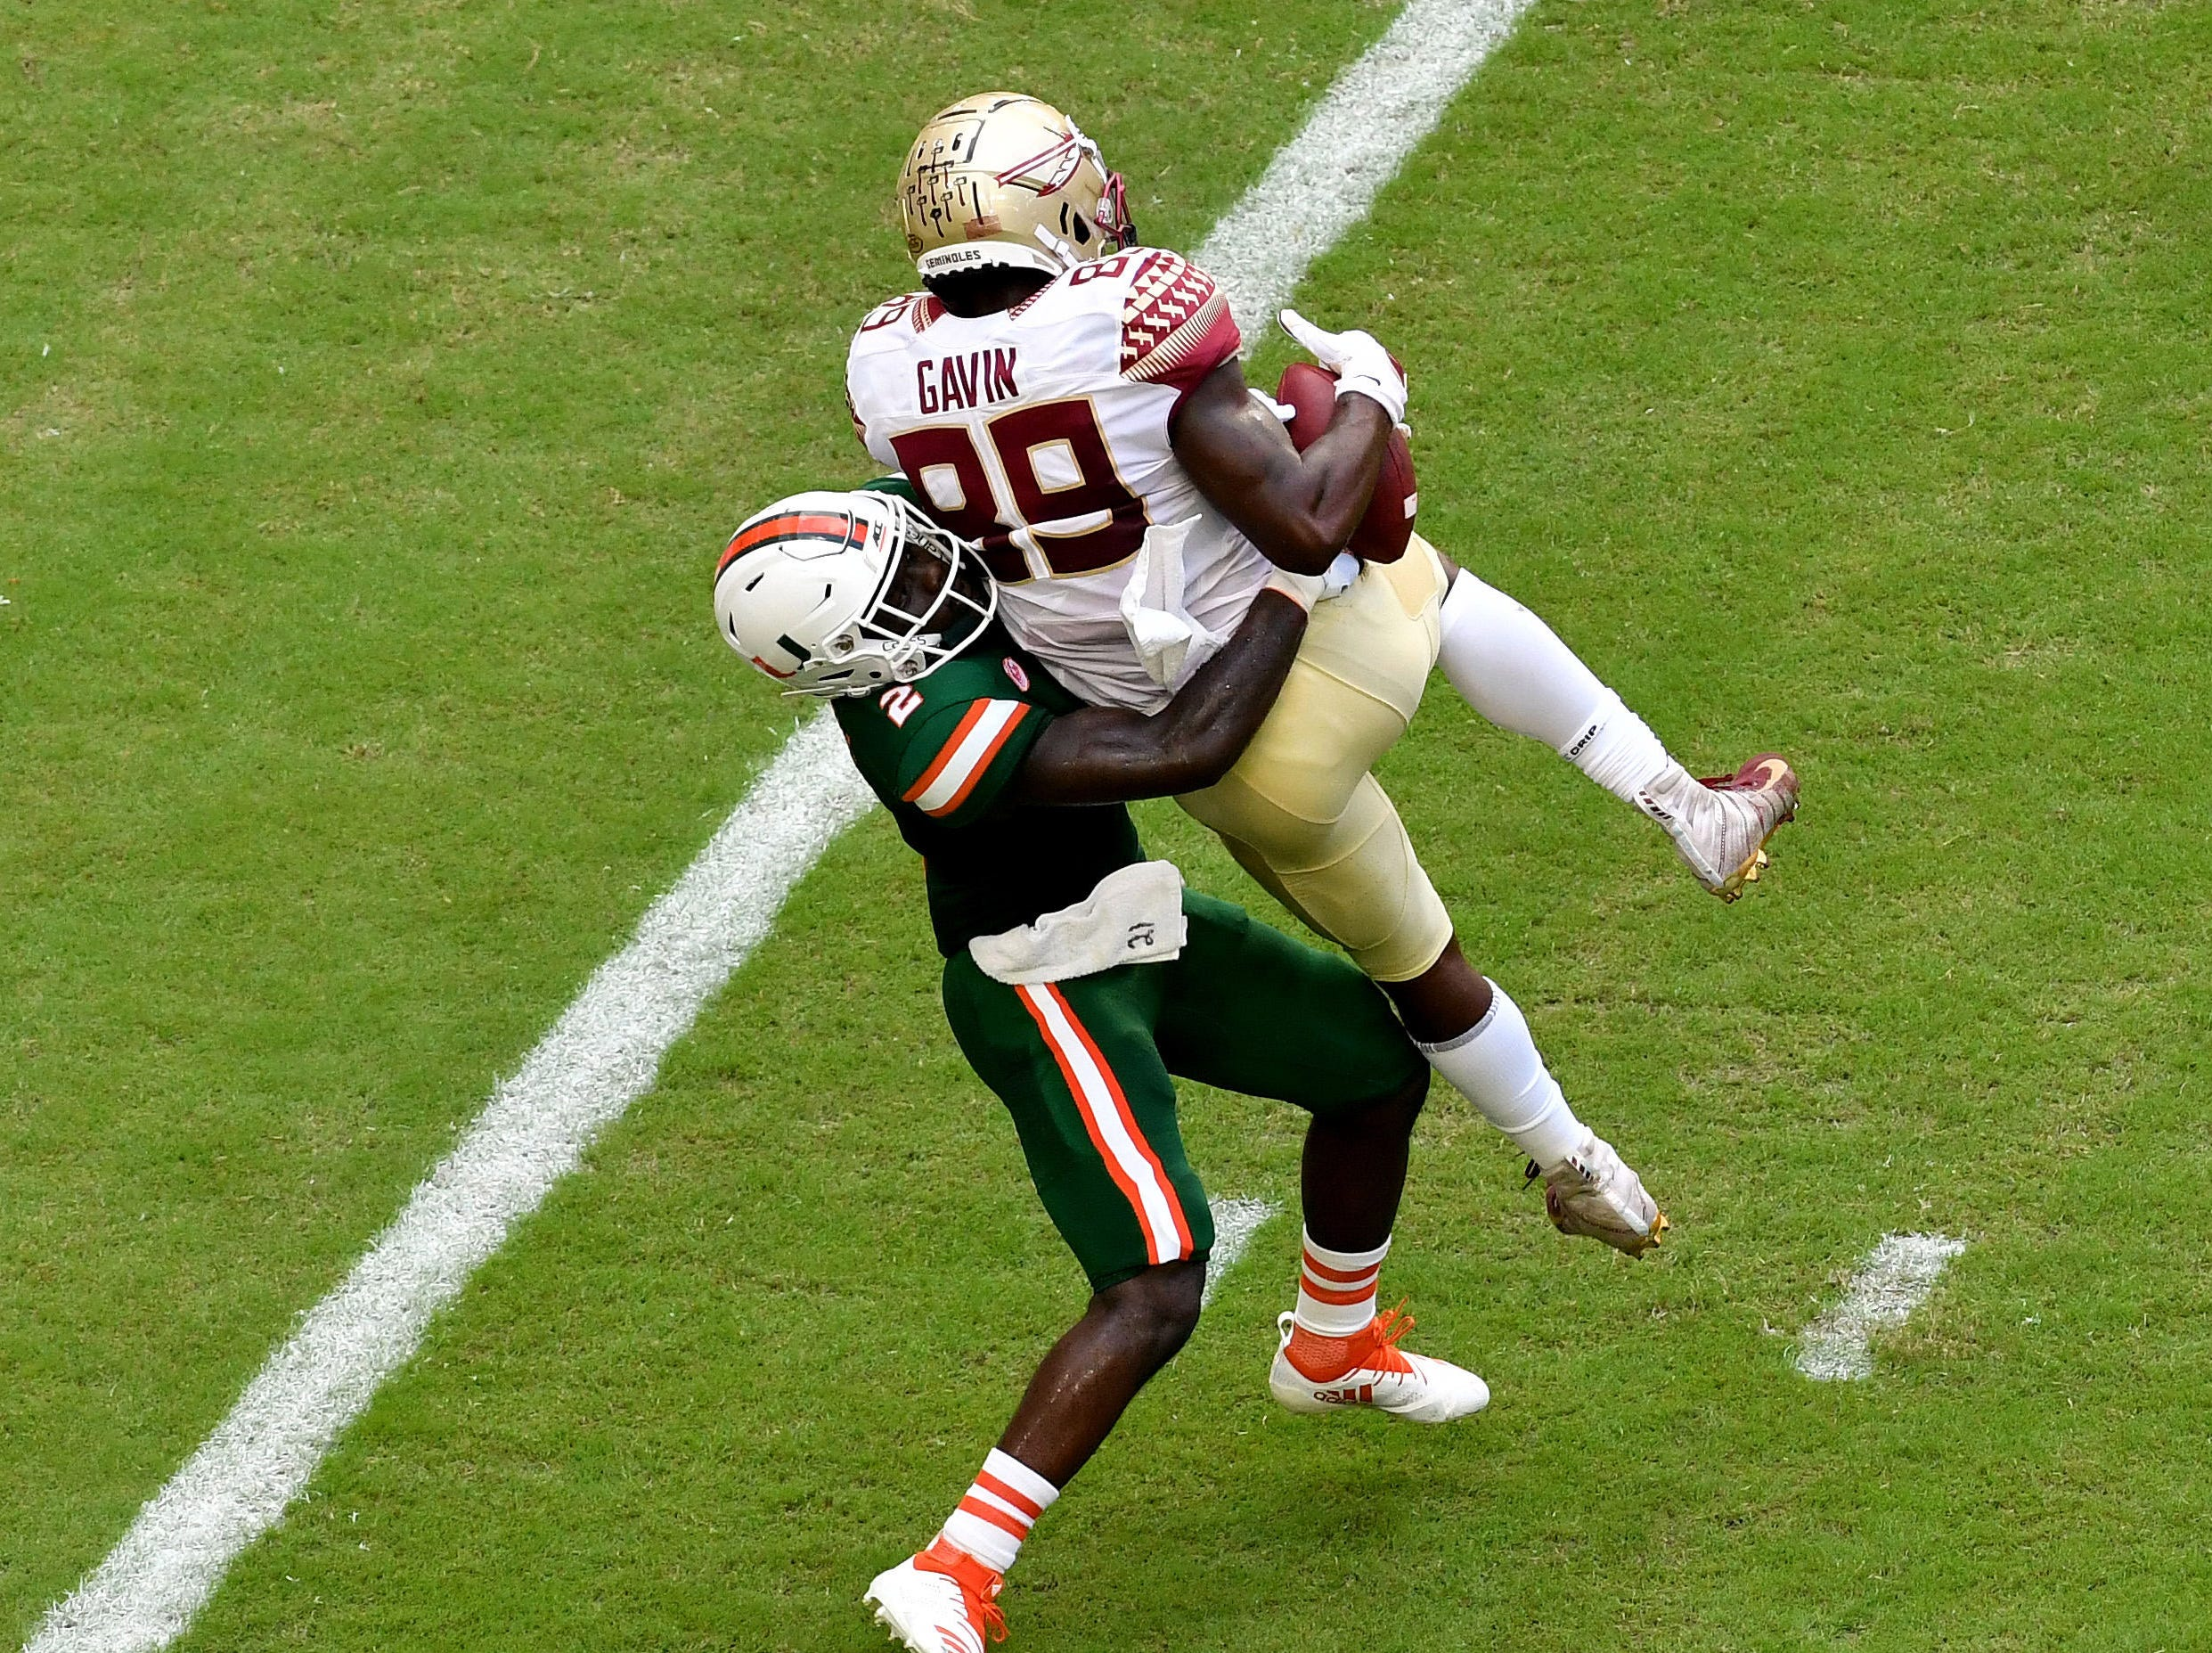 Oct 6, 2018; Miami Gardens, FL, USA; Florida State Seminoles wide receiver Keith Gavin (89) catches a touch down catch as Miami Hurricanes defensive back Trajan Bandy (2) makes the tackle during the first half at Hard Rock Stadium. Mandatory Credit: Steve Mitchell-USA TODAY Sports